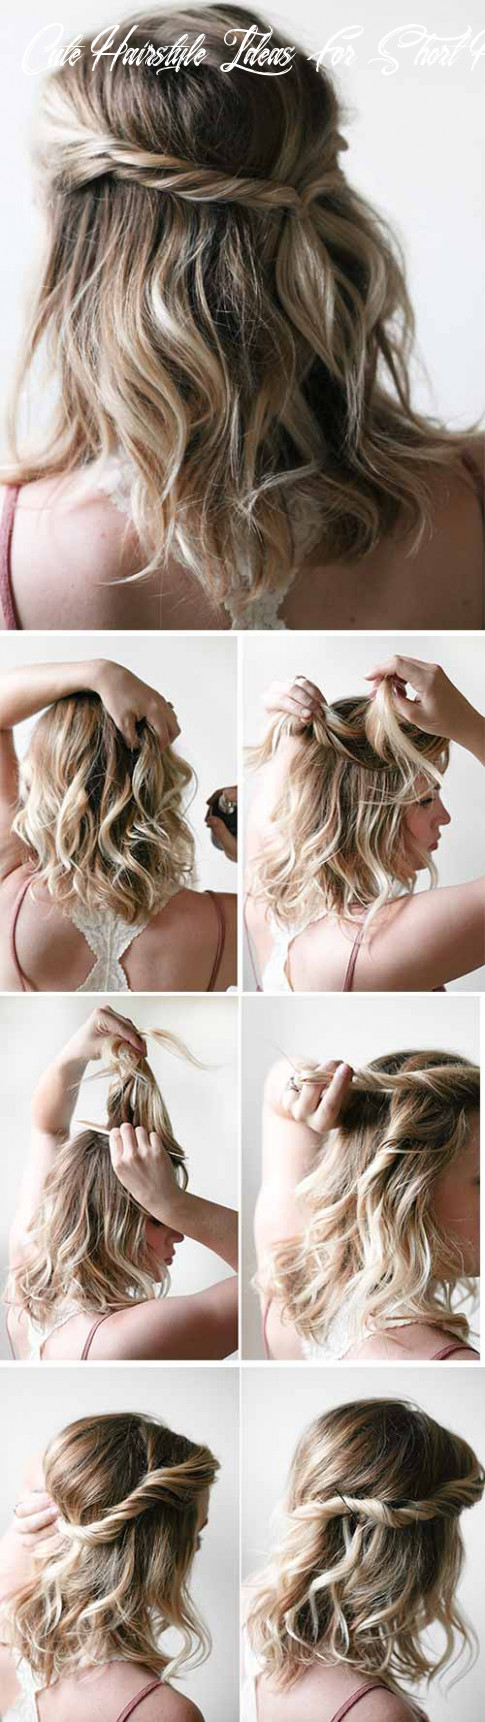 12 incredible diy short hairstyles a step by step guide cute hairstyle ideas for short hair